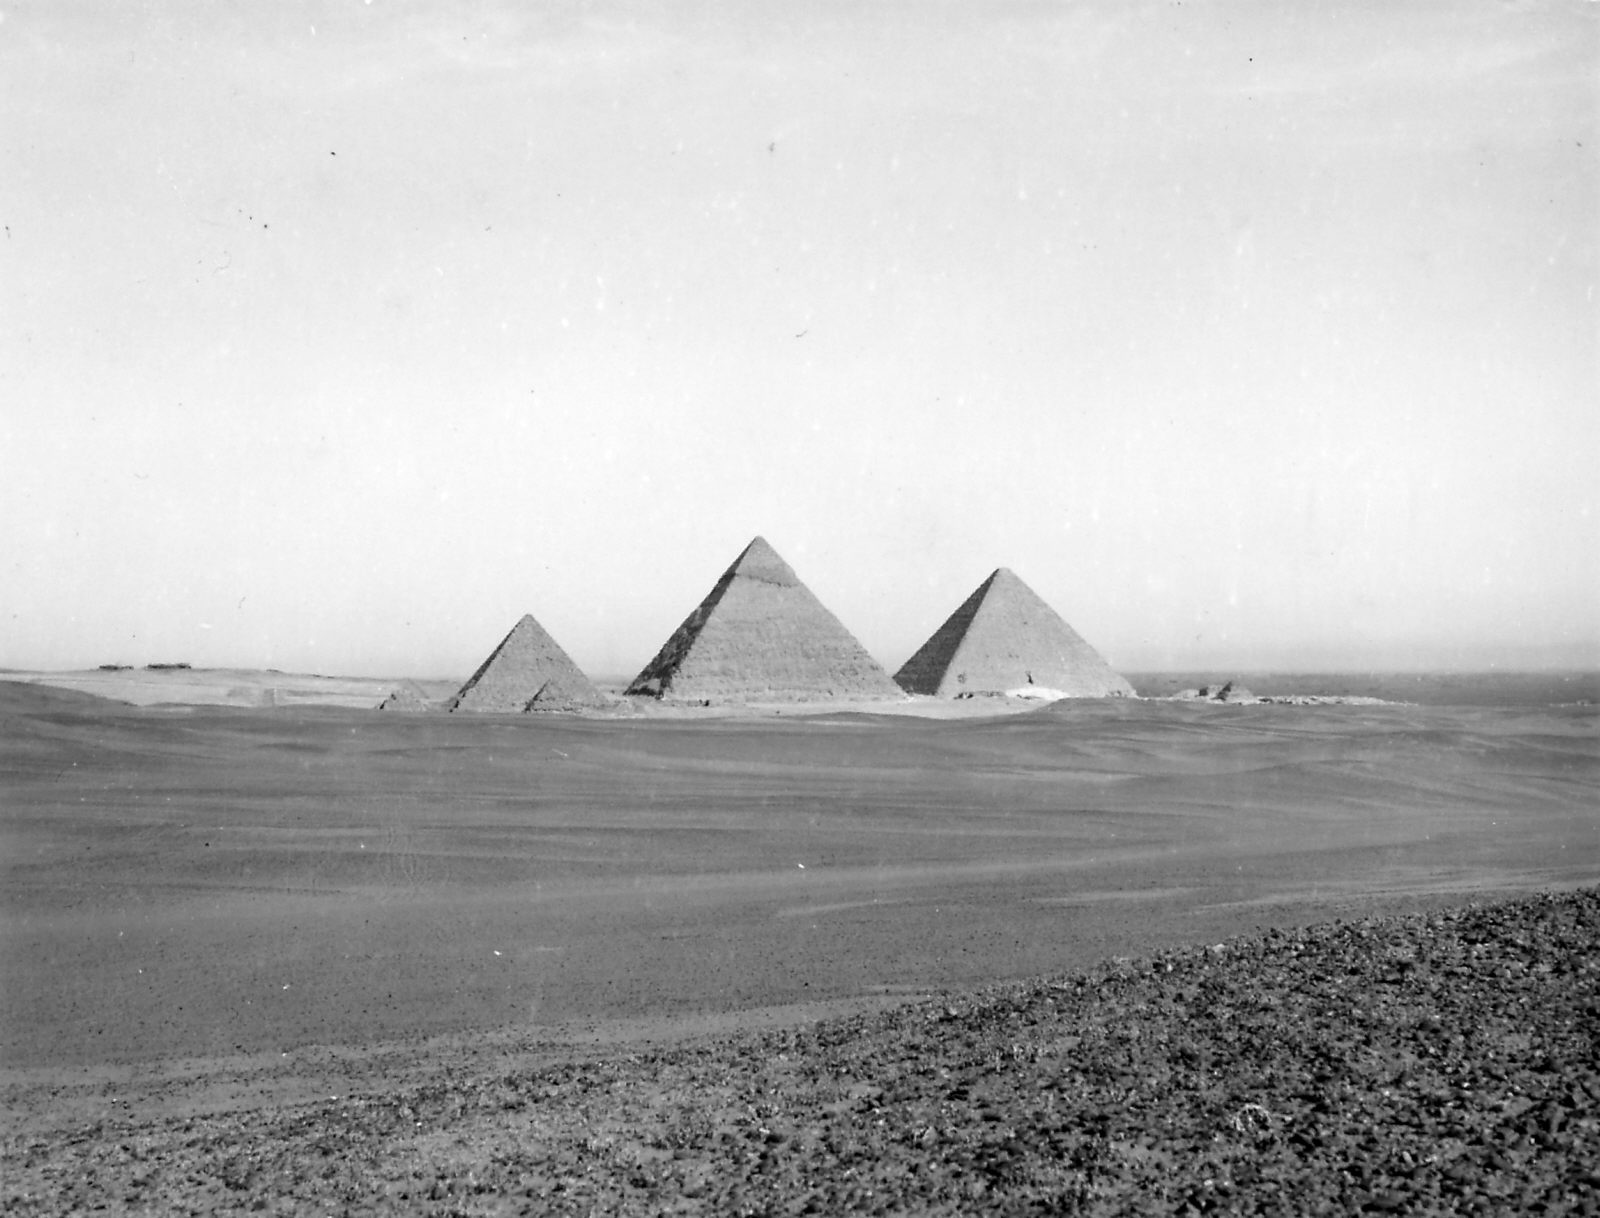 General view: Site: Giza; View: Khufu Pyramid, Khafre Pyramid, Menkaure Pyramid